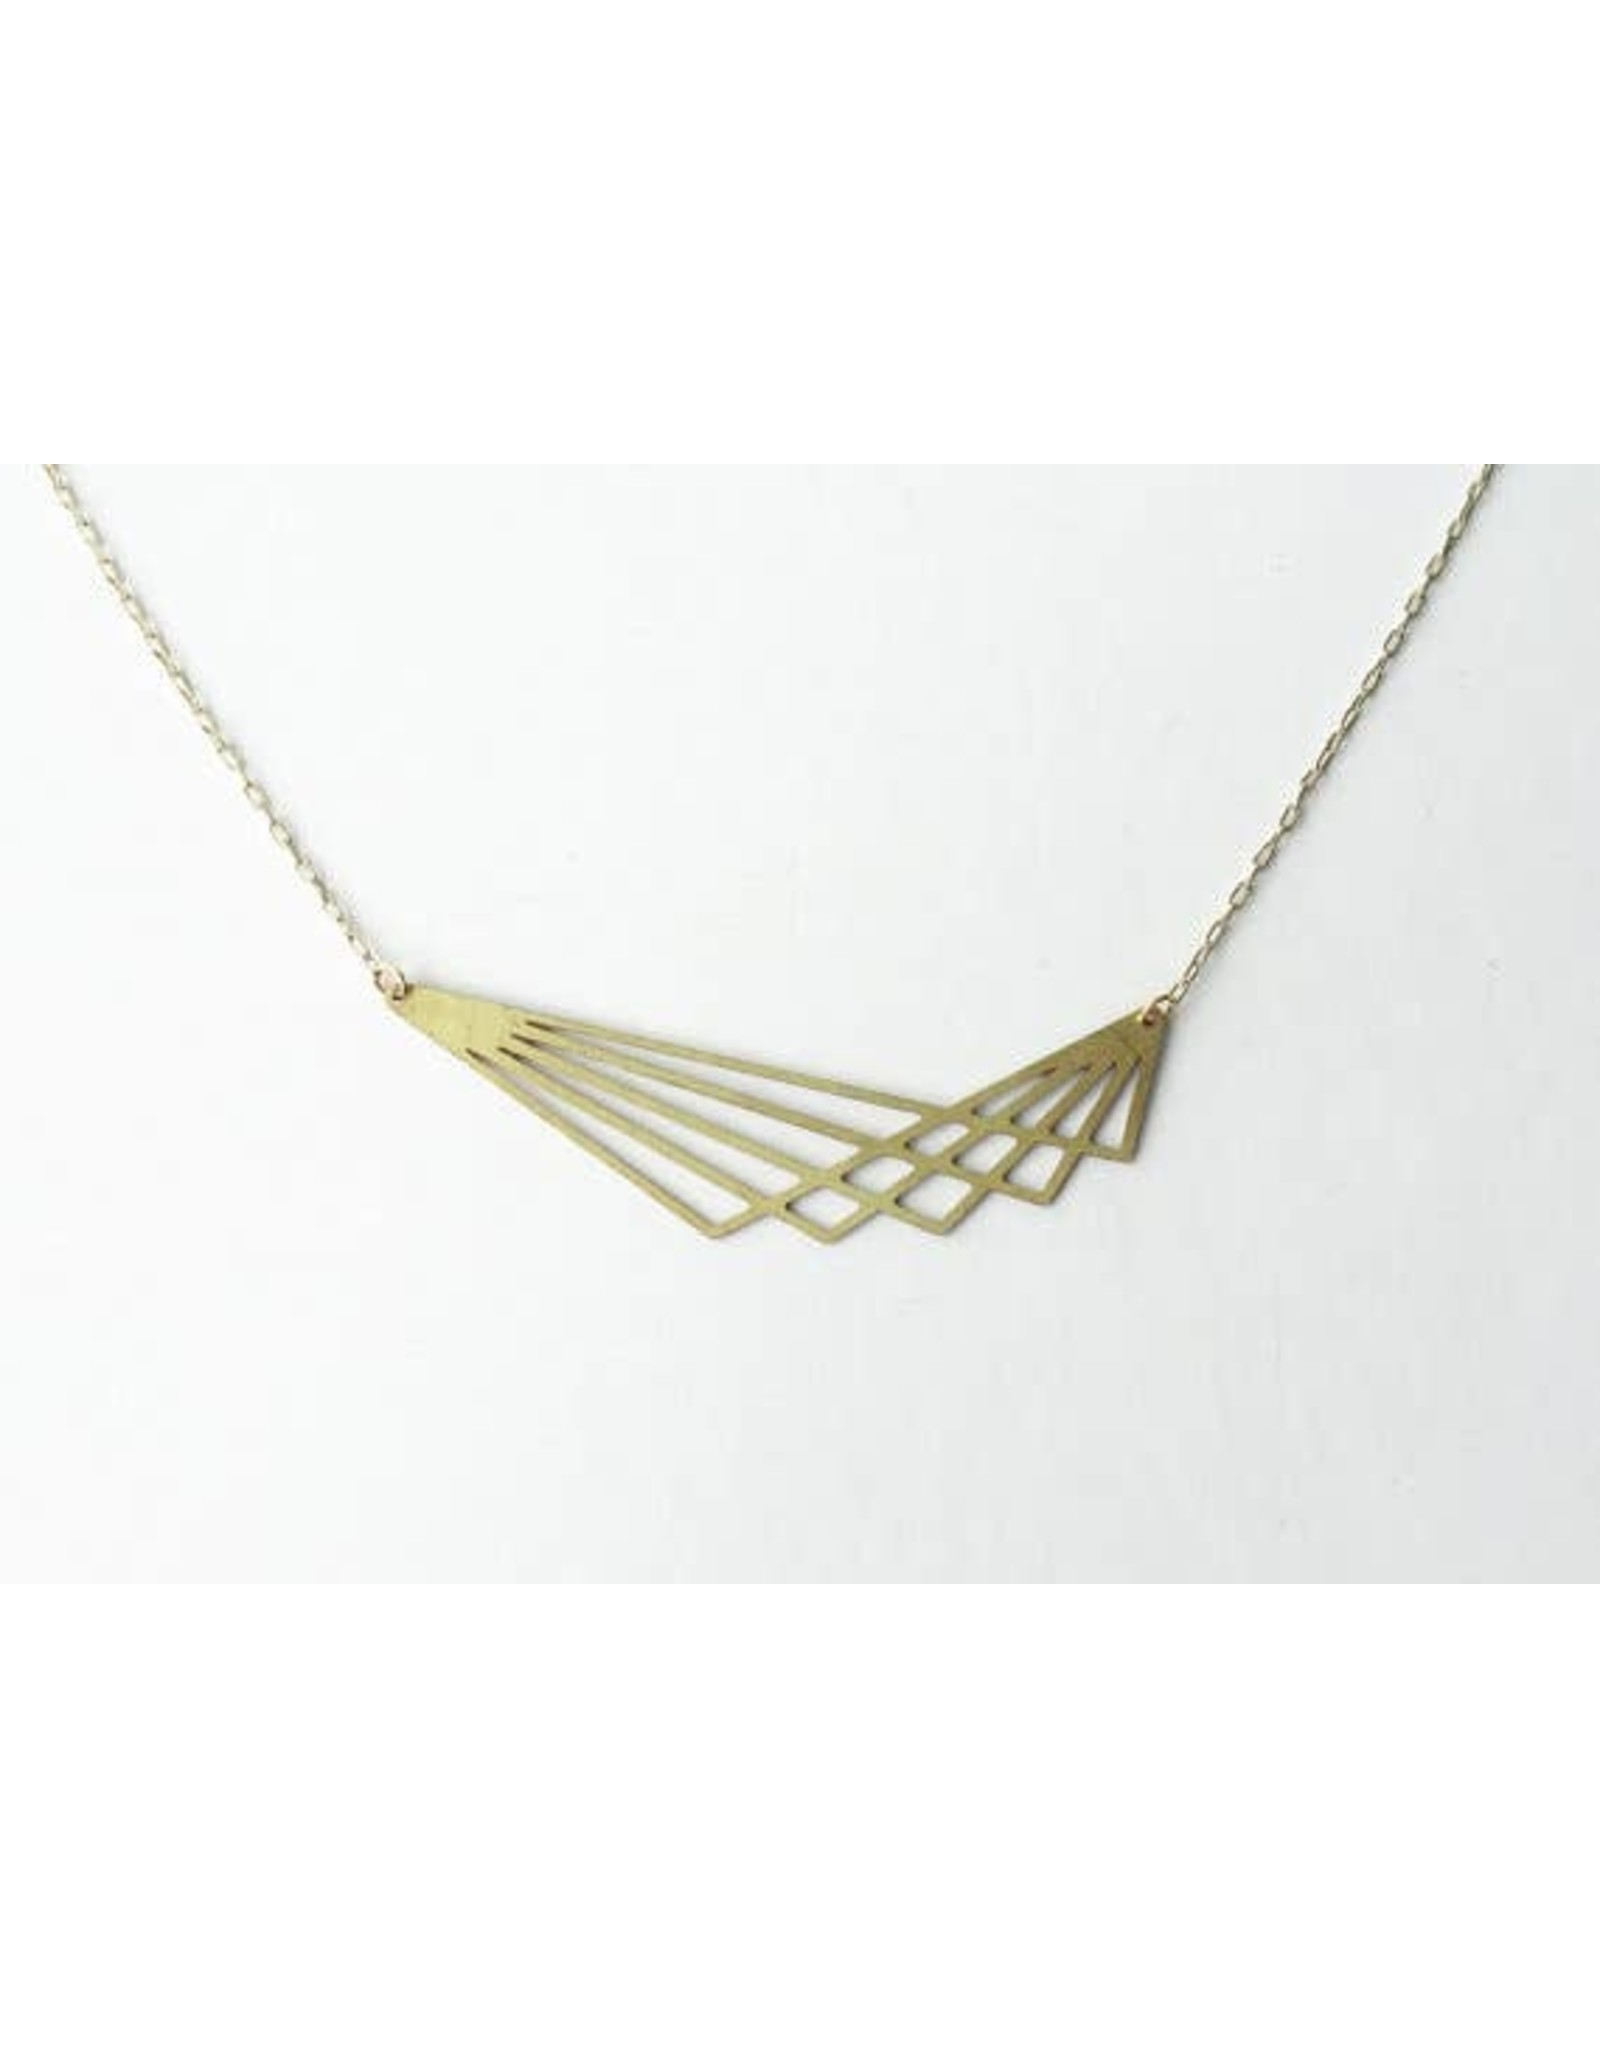 TLJ Geometric Lines Necklace: Gold